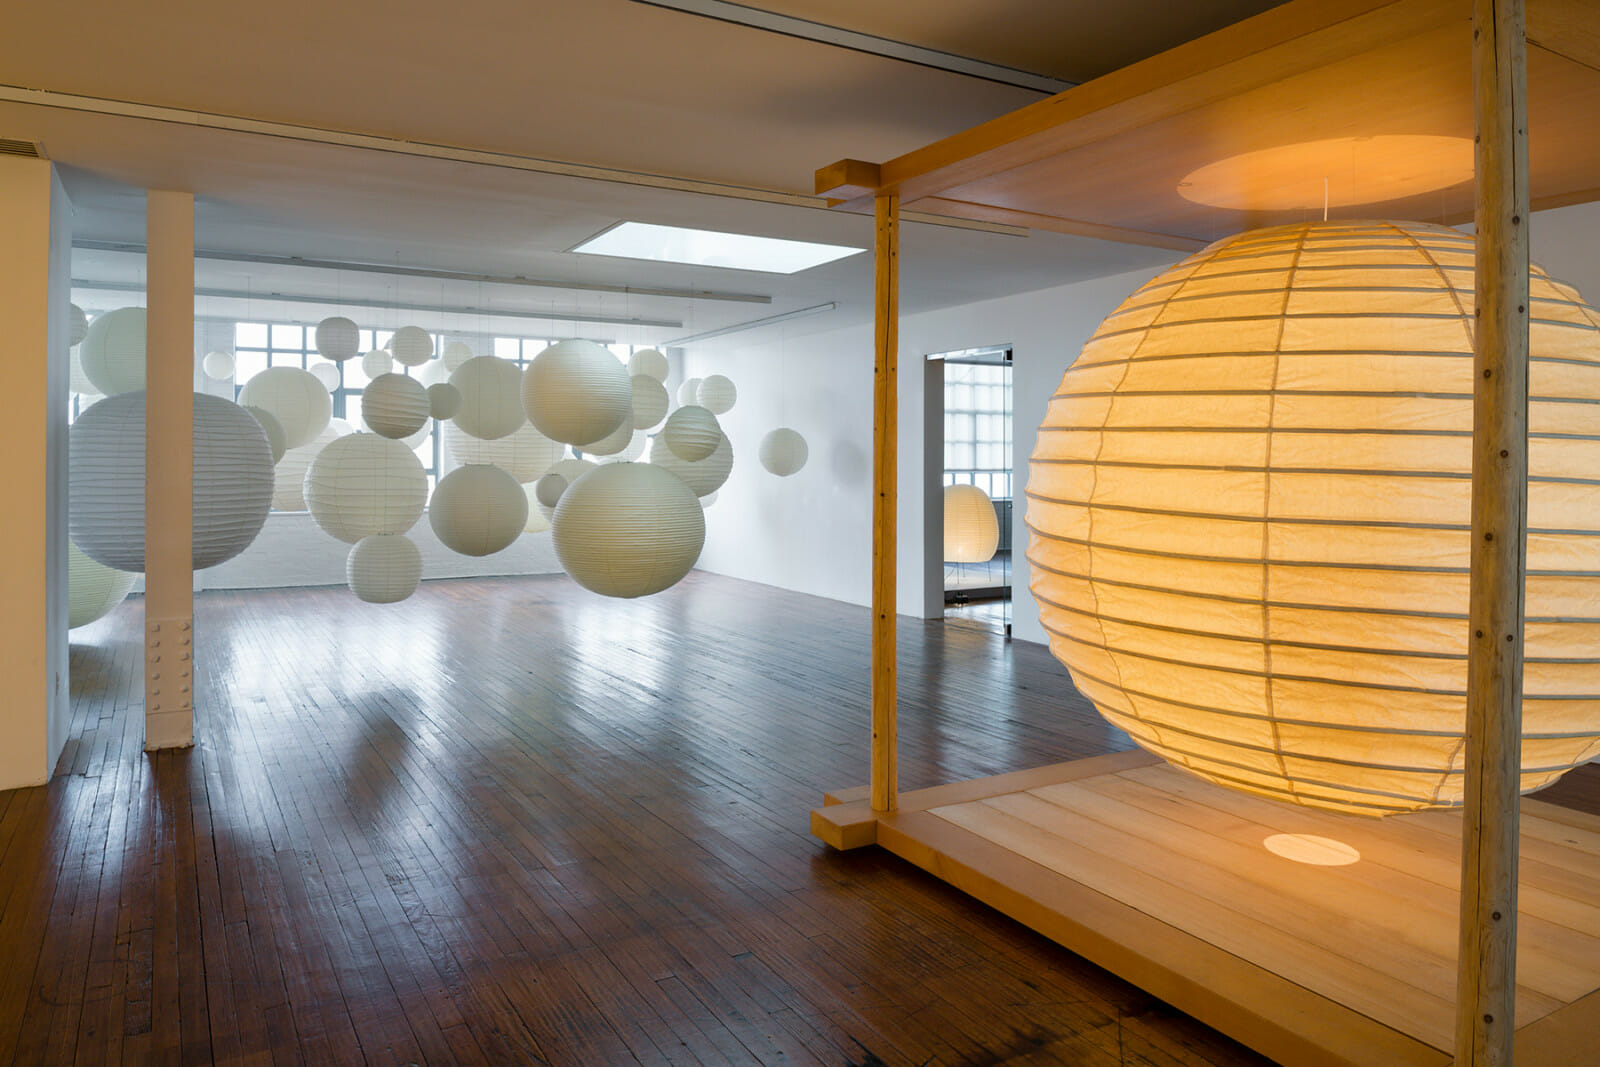 Noguchi Museum | Top 5 Most Unusual Museums in NYC